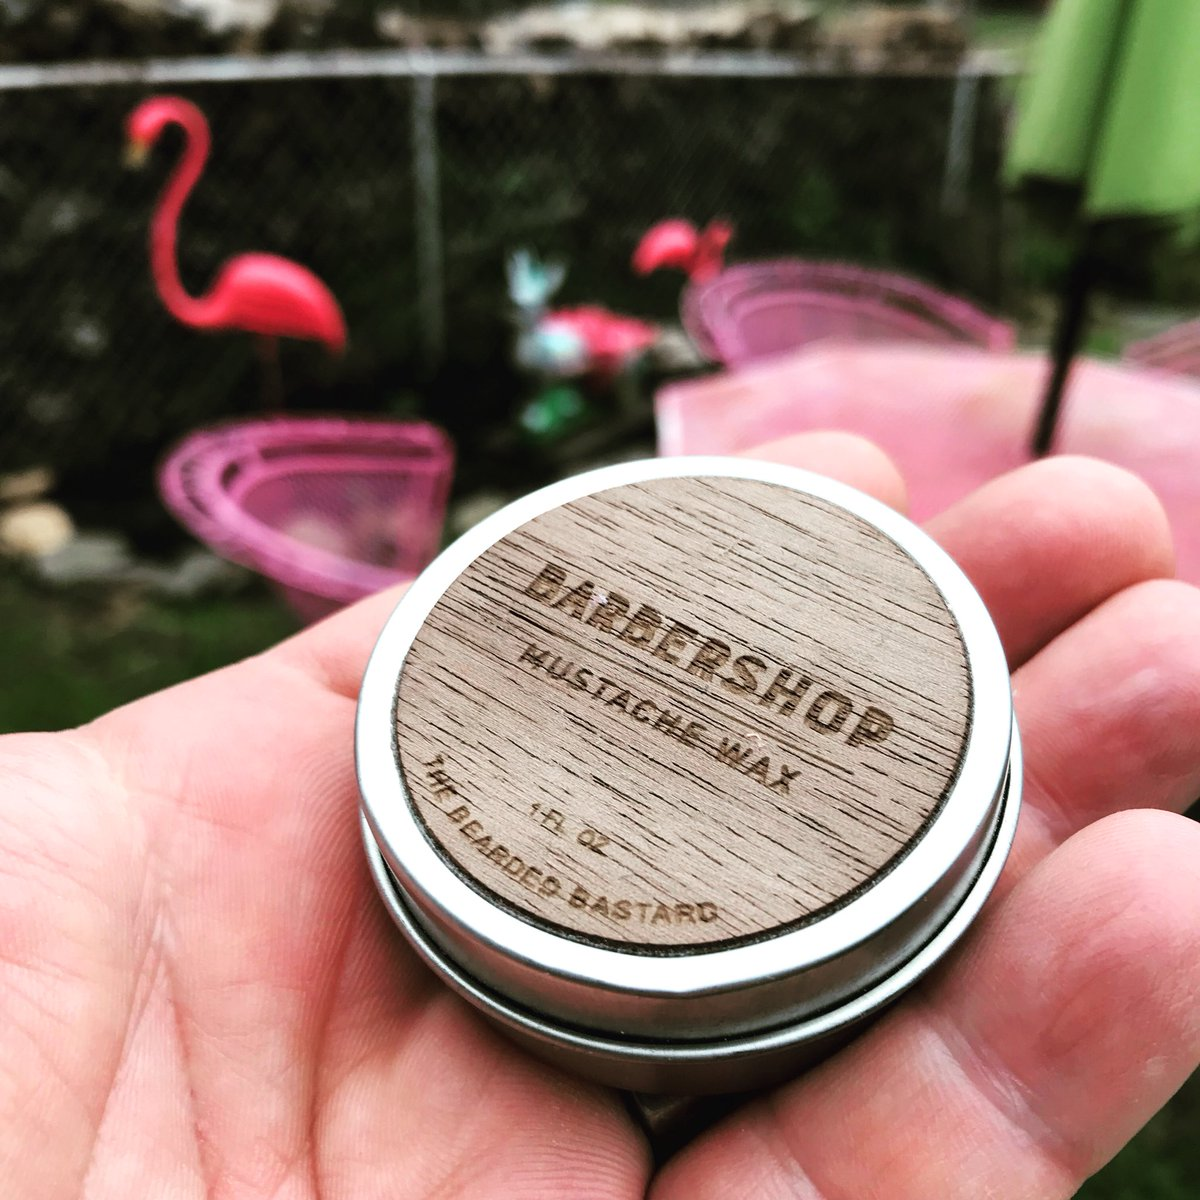 I&#39;ve recently switched to The Bearded Bastard stache wax and have to say I love it. A lot.   @tbbinc3 #moustache #moustachewax #amazinghold <br>http://pic.twitter.com/6Eomo0VjjW